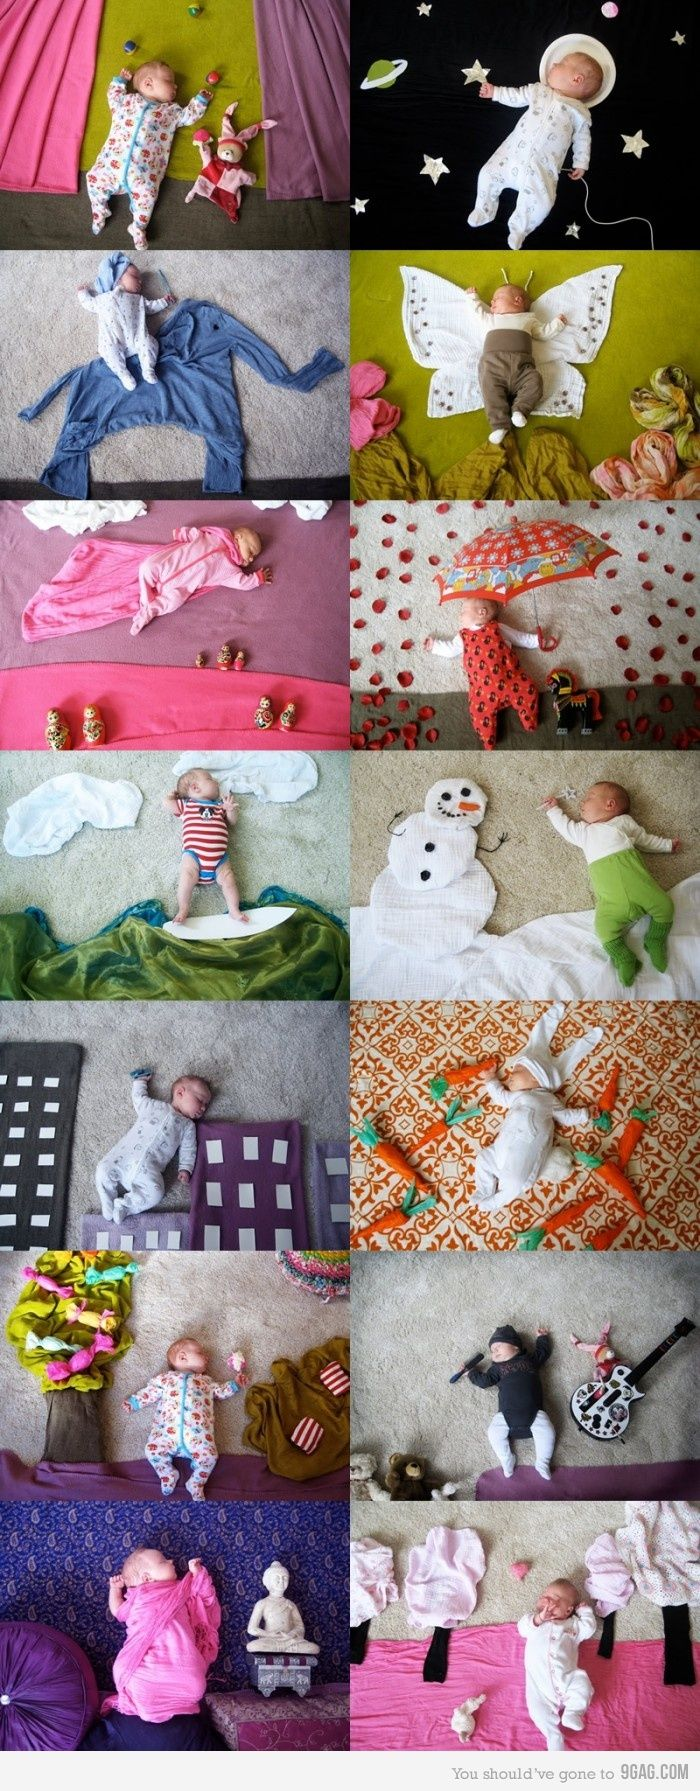 Super Cute!: Photoidea, Baby Pics, Cute Idea, Baby Pictures, Sleep Baby, Photo Idea, Baby Photos, Photography, Babyphoto